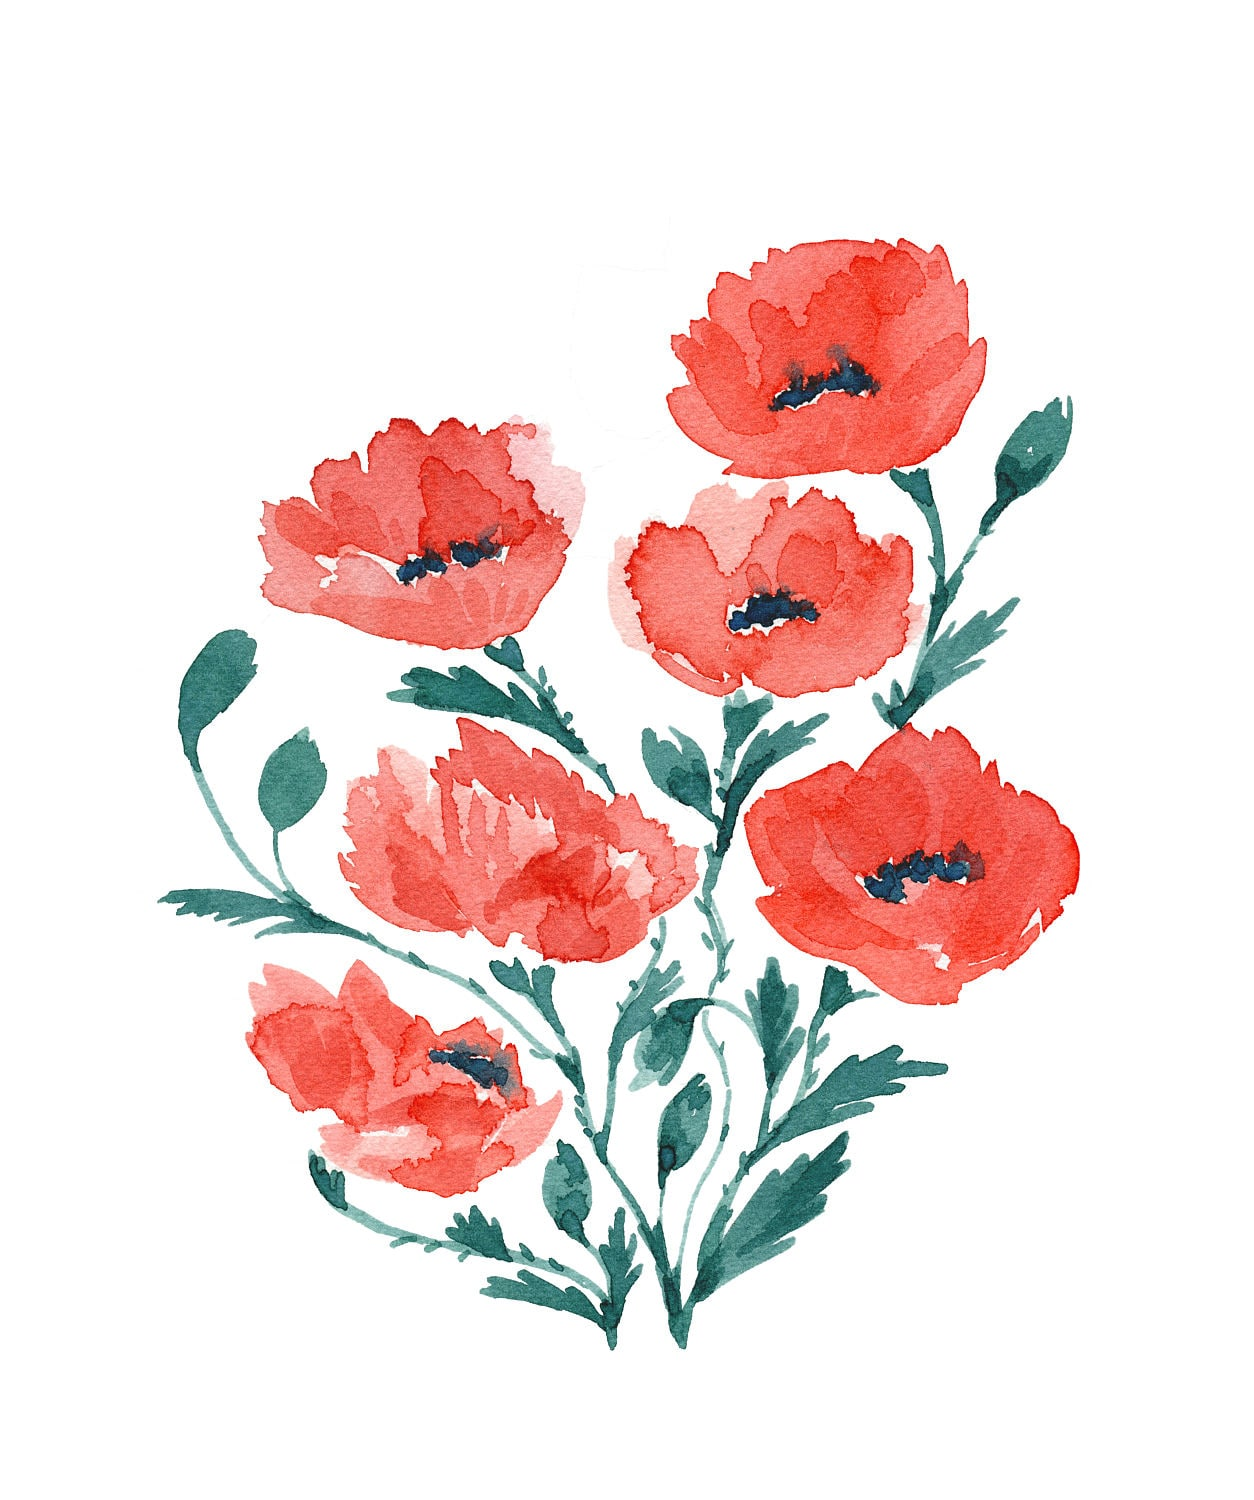 Red Poppies 101 Watercolor Print Red Poppy Red Poppies Art Poppy